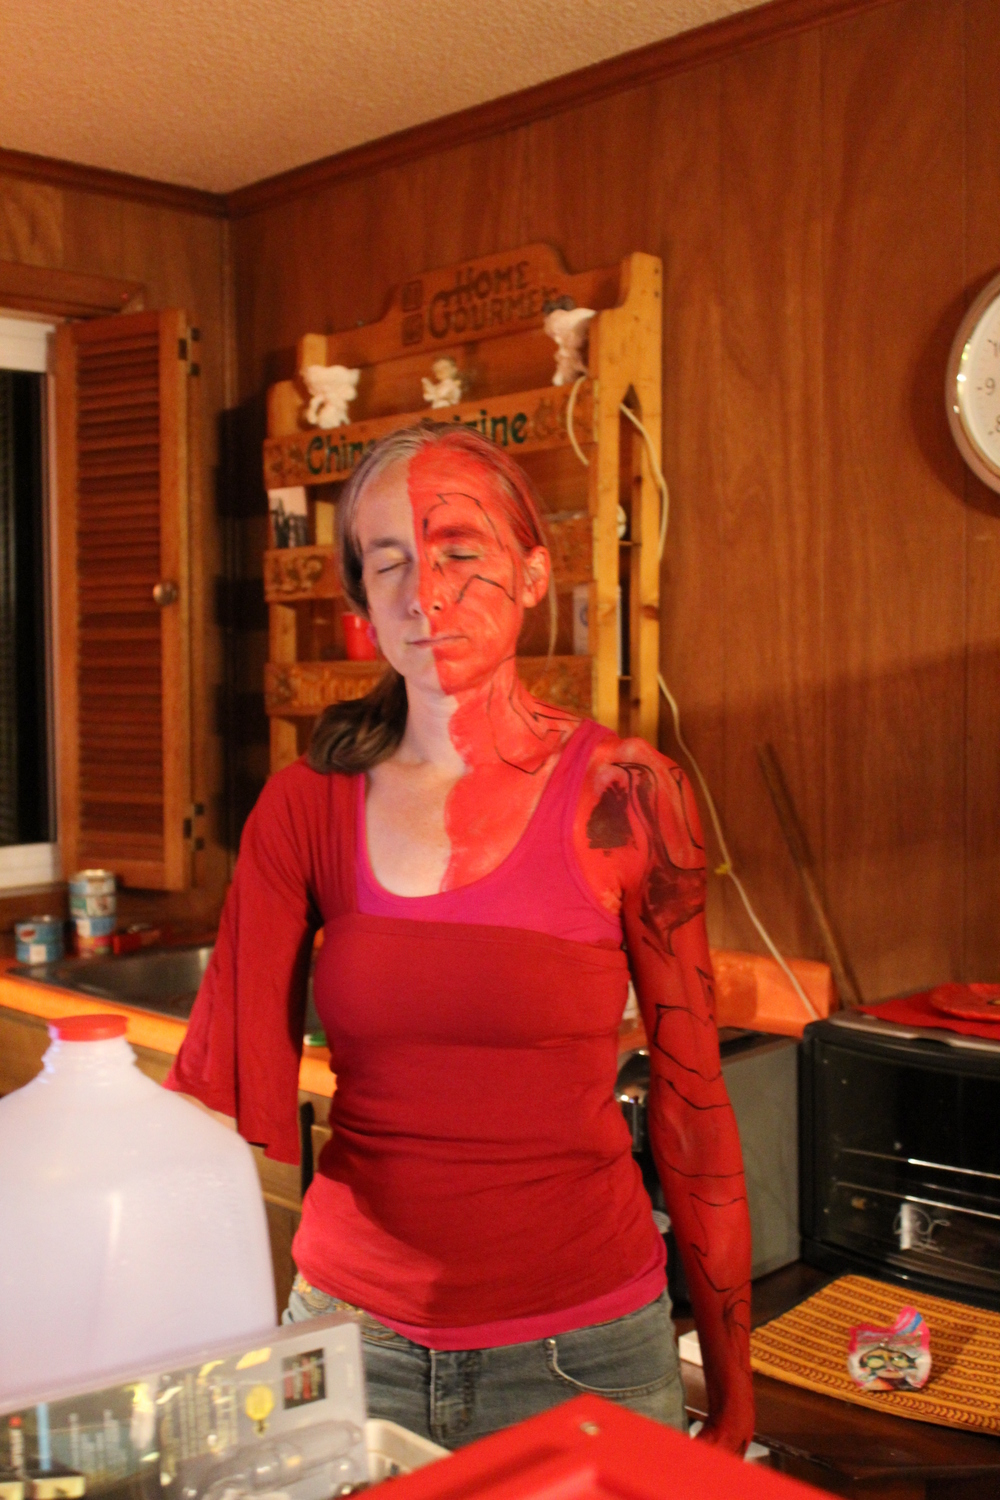 My mom partway through being painted.  The red is lava and the black shapes are going to be crusty lava.  The red was grease paint and acrylic paint and red sharpie marker.